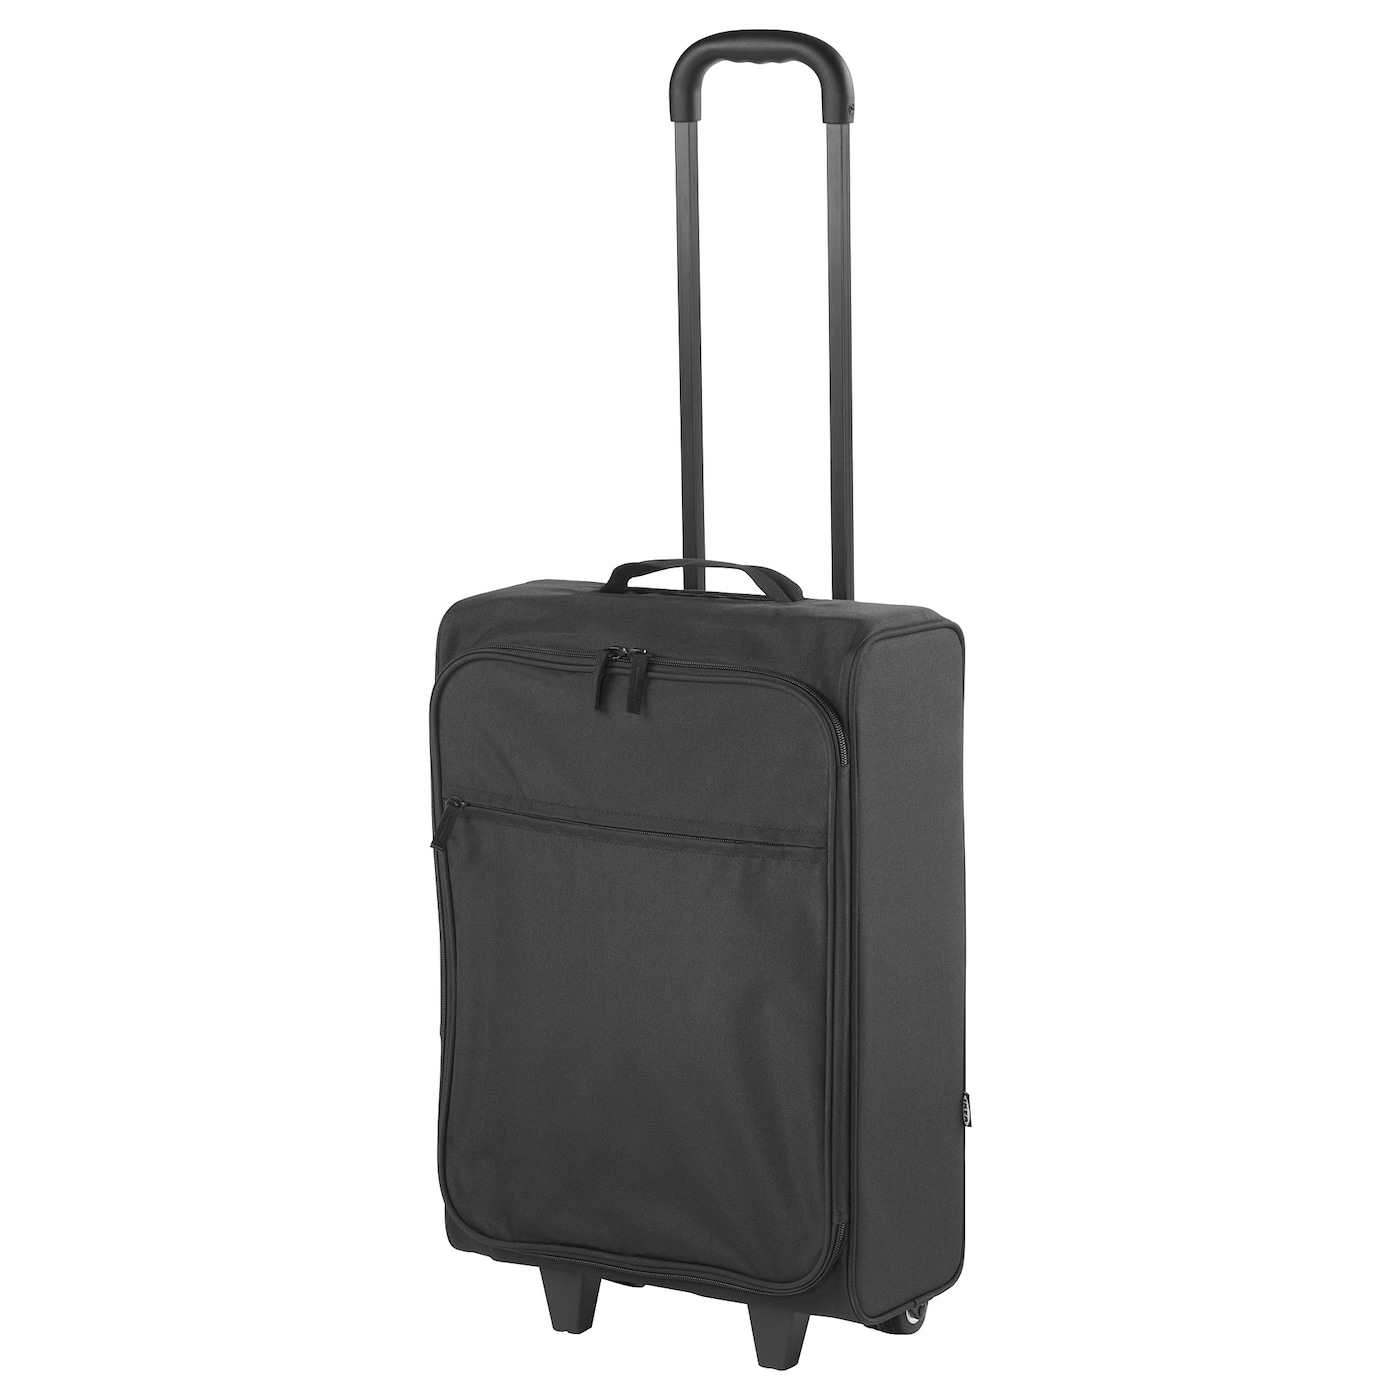 IKEA STARTTID cabin bag on wheels